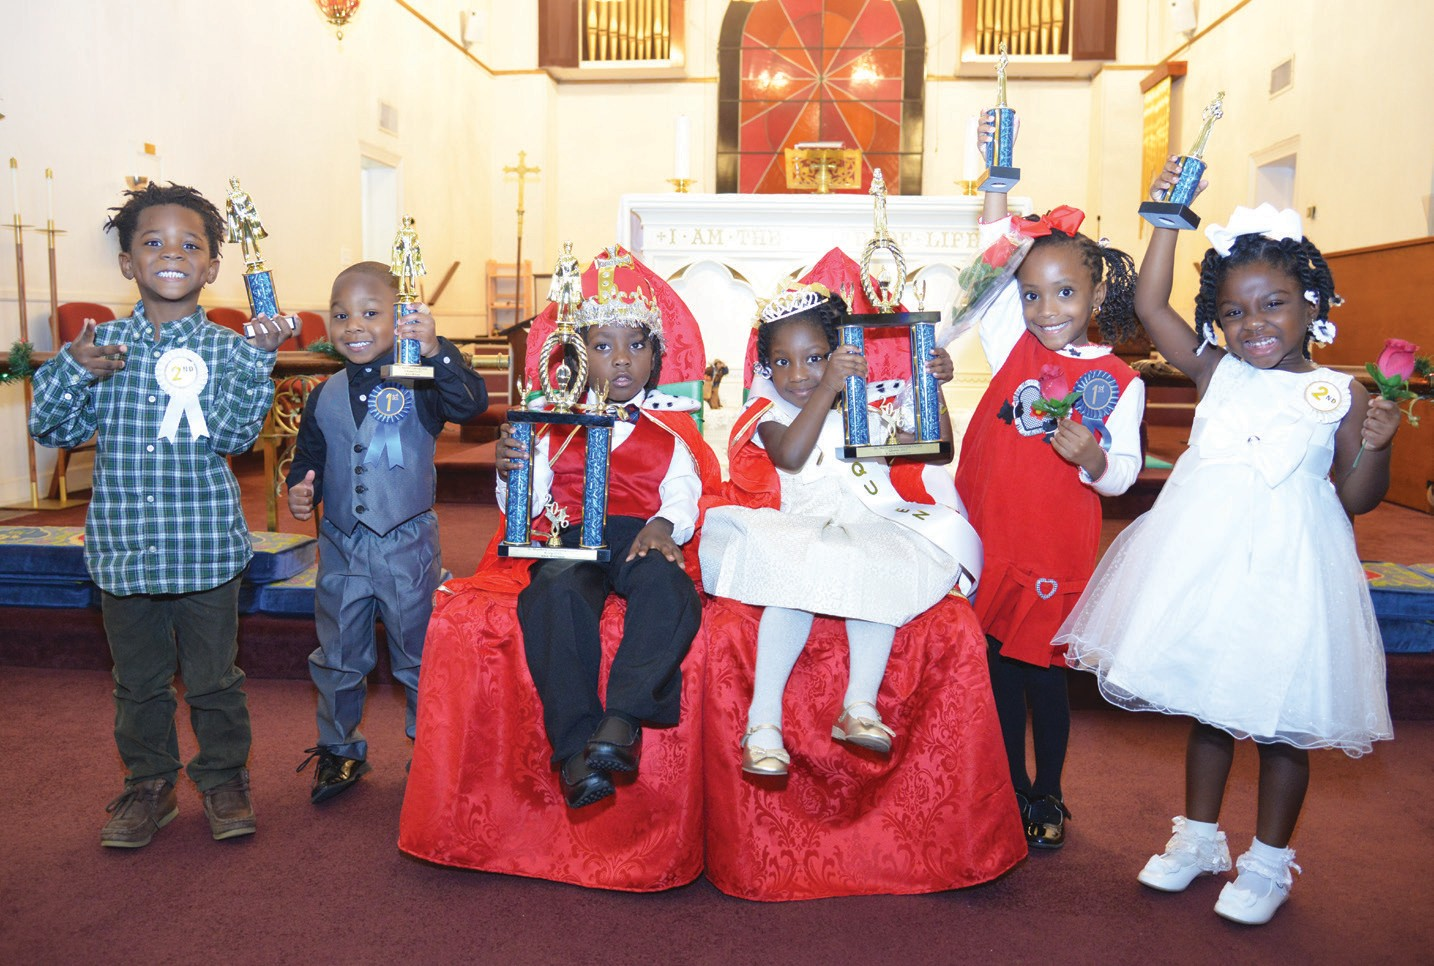 From left to right: Jayden Jest, Kevin Williams, Alex Williams, Layla Simmons Alora Rasheed, Andrea Robinson.